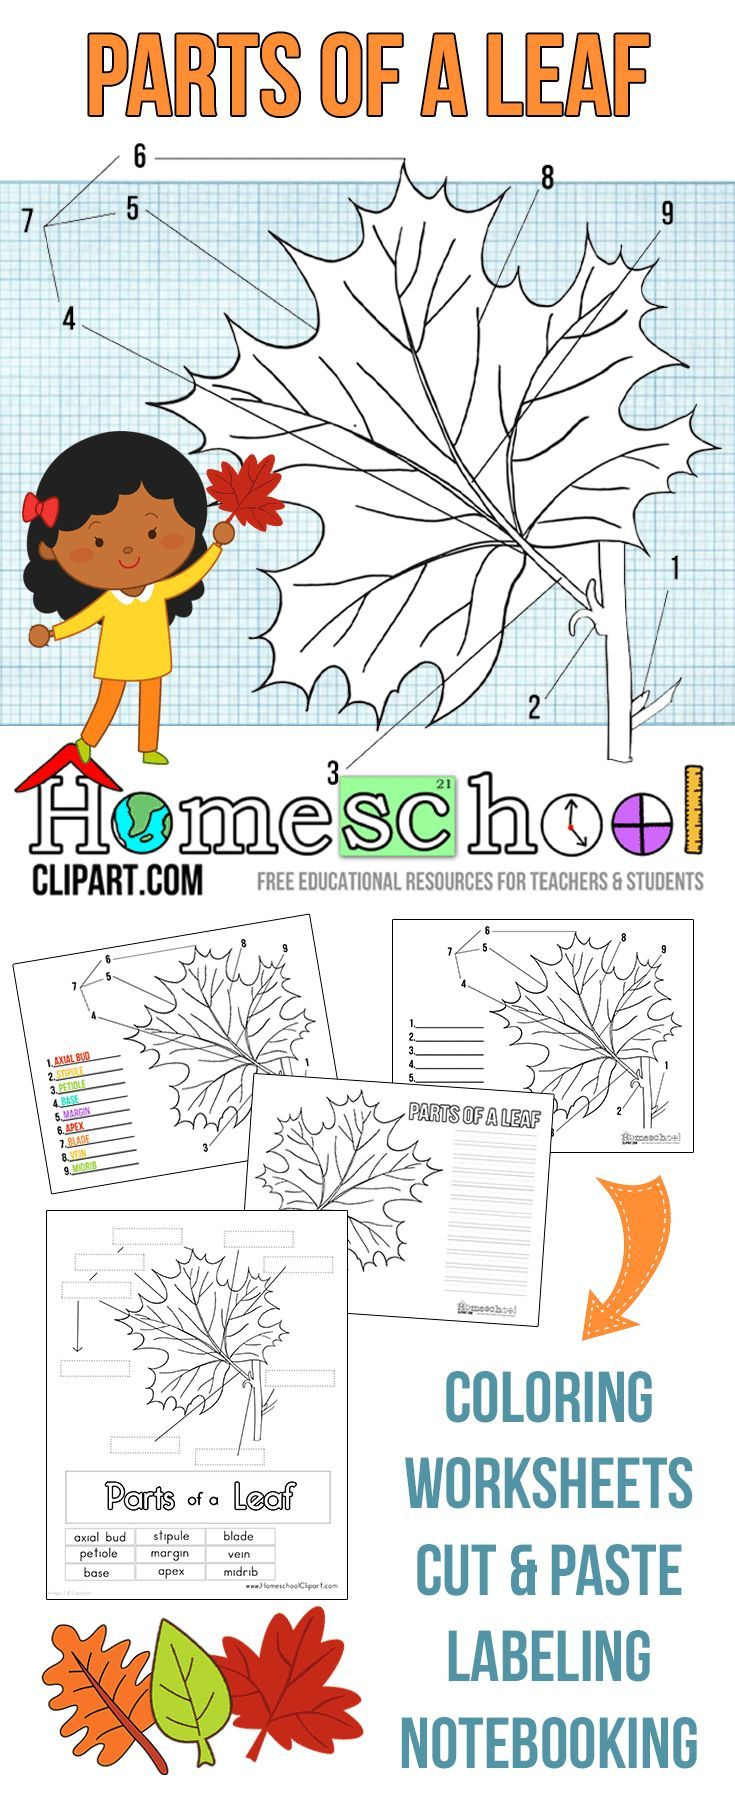 Uncategorized Leaf Anatomy Worksheet free parts of a leaf science notebook worksheets coloring pages labeling charts cut